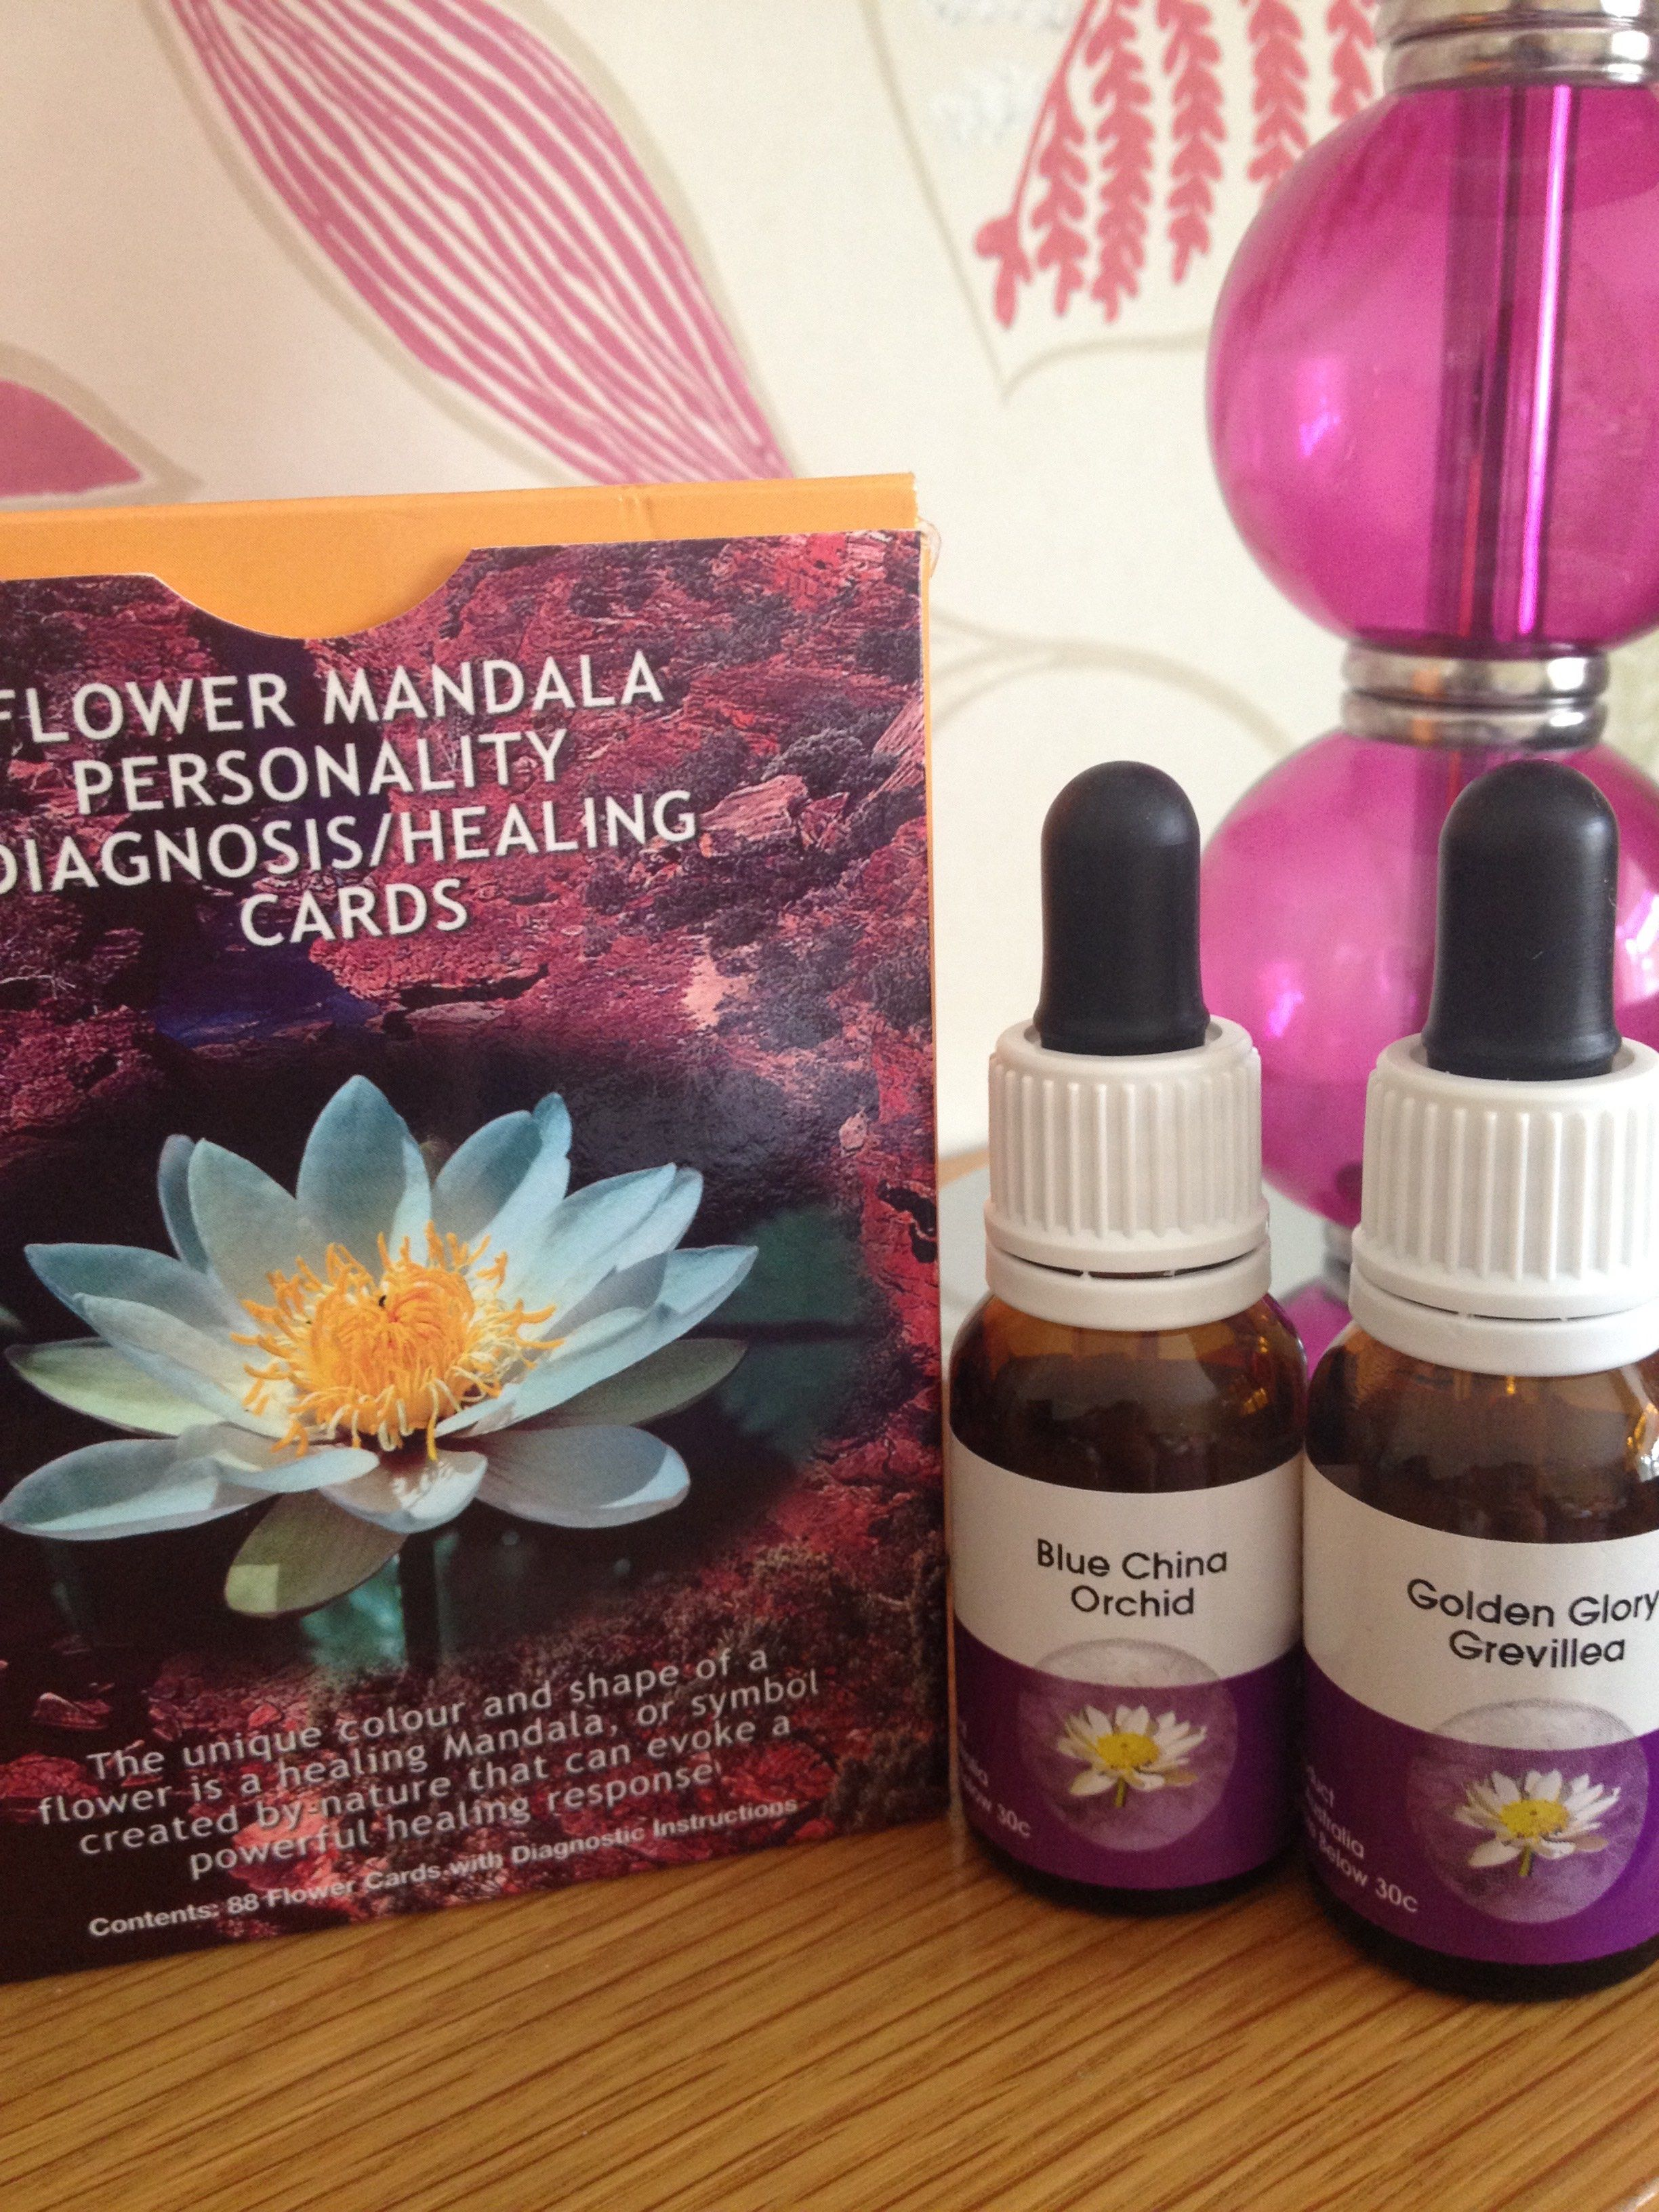 Pwhat Flower Essence Could Help You I Love Flower Essences And